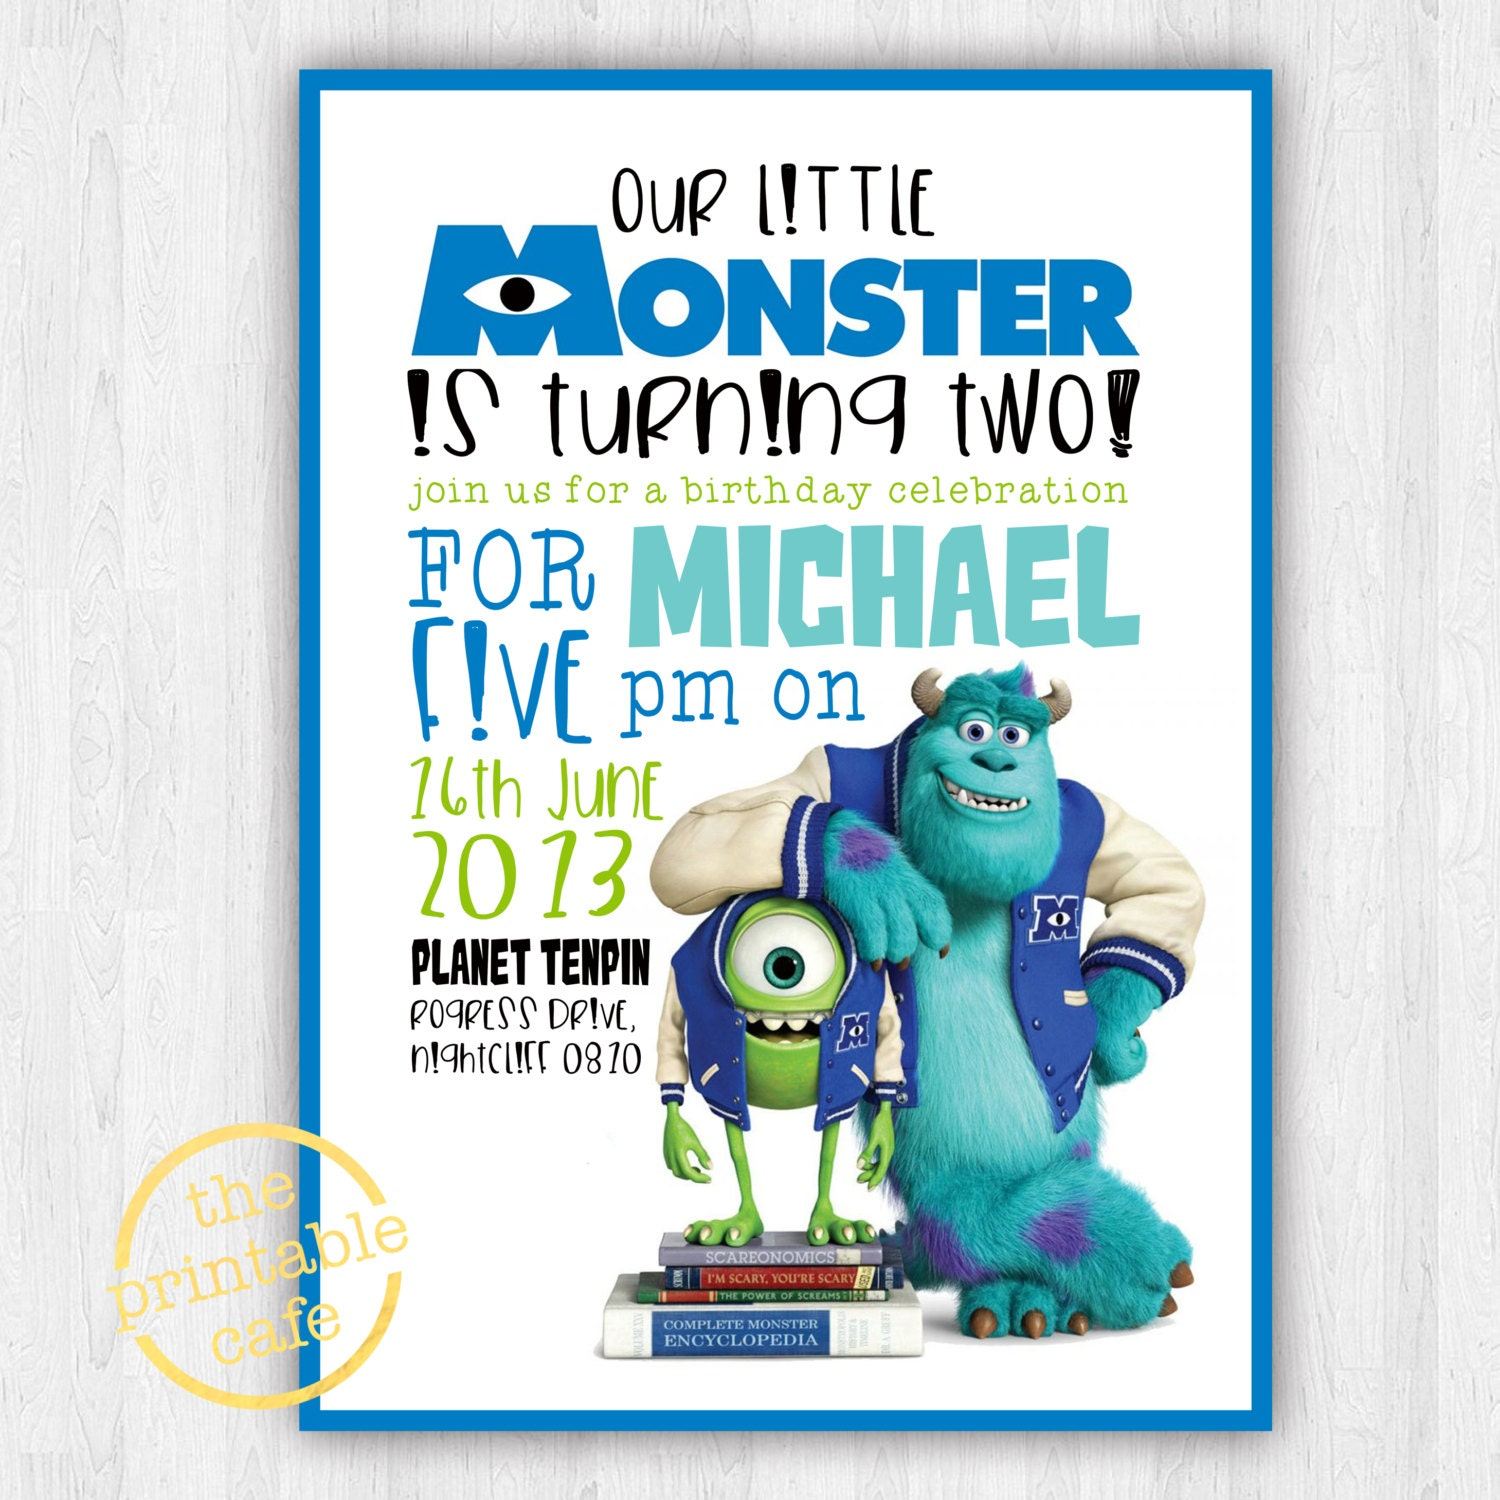 Monsters Inc invitation ONLY Modern Contemporary Kids